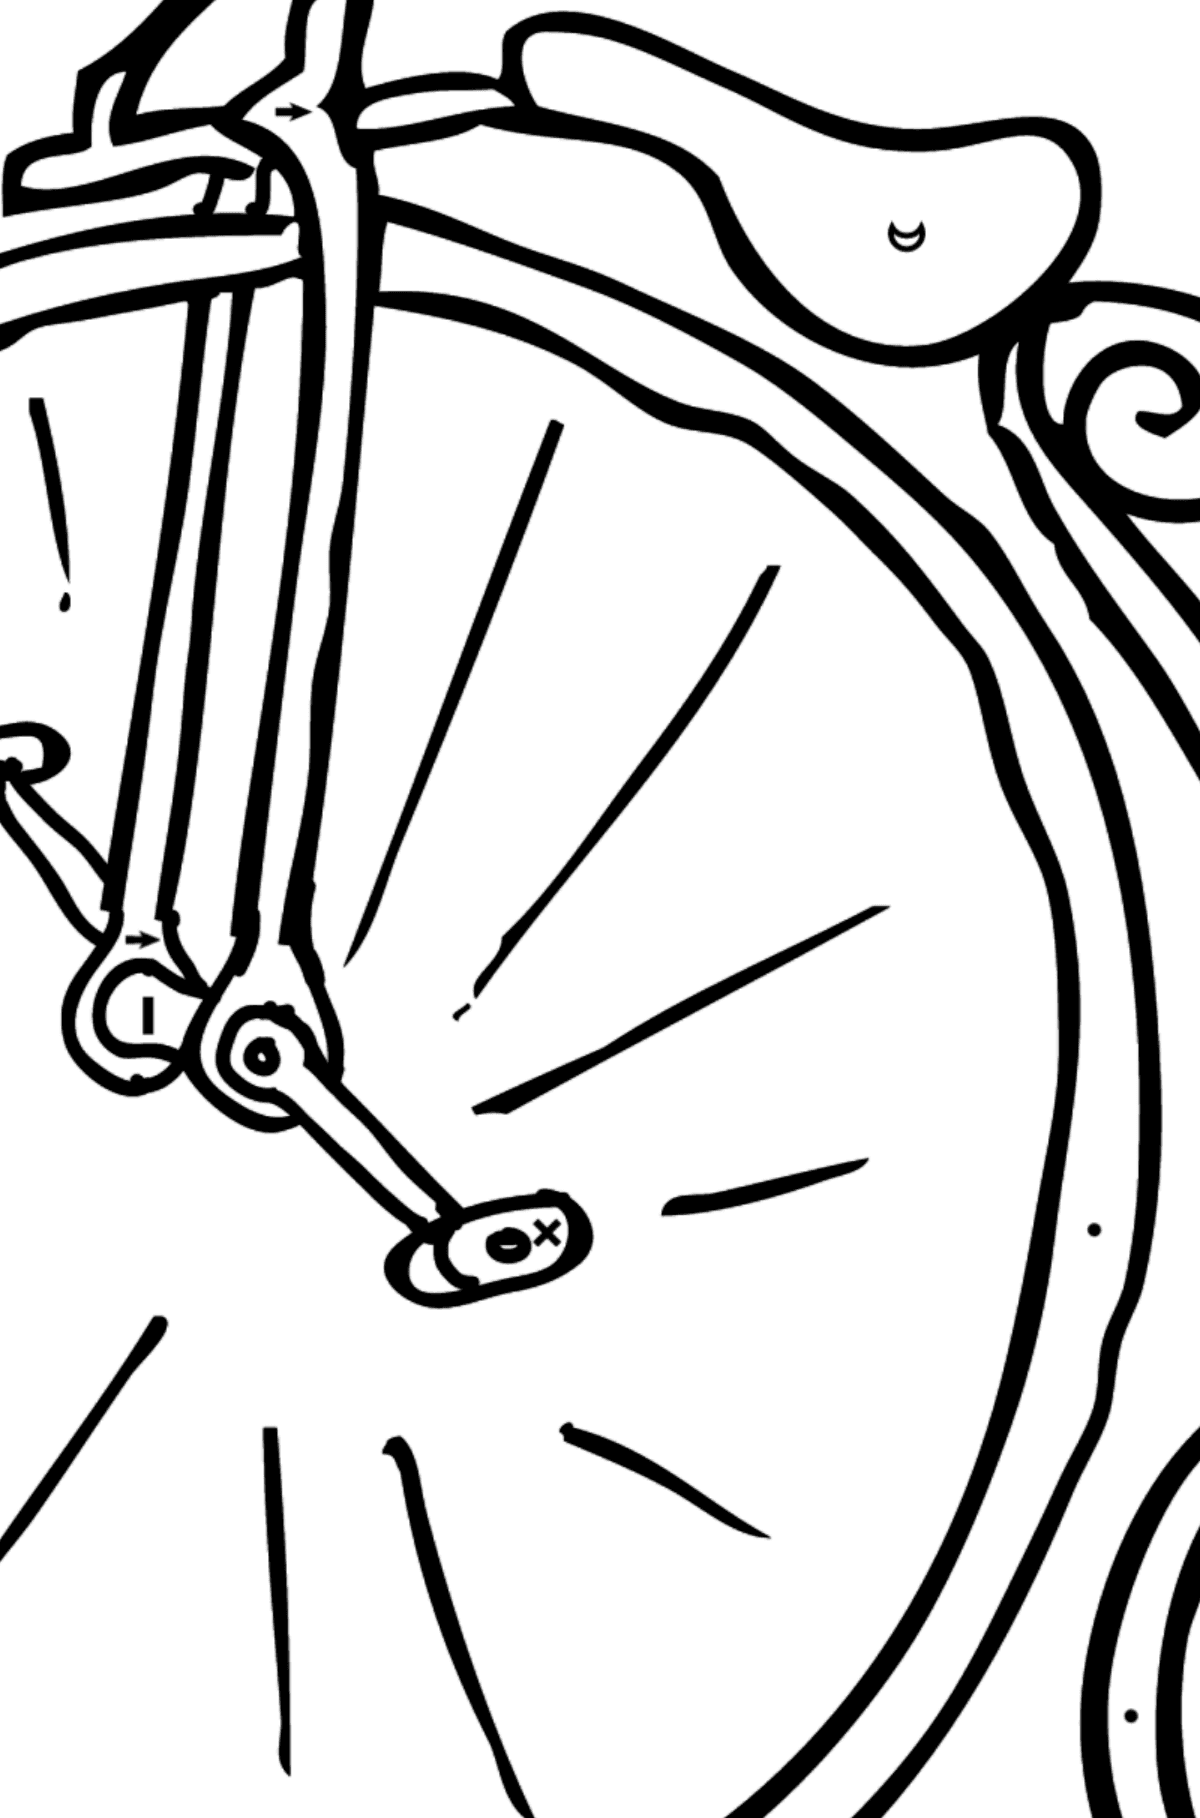 Coloring Page - A High-Wheel Cycle – Unicycle - Coloring by Symbols for Kids